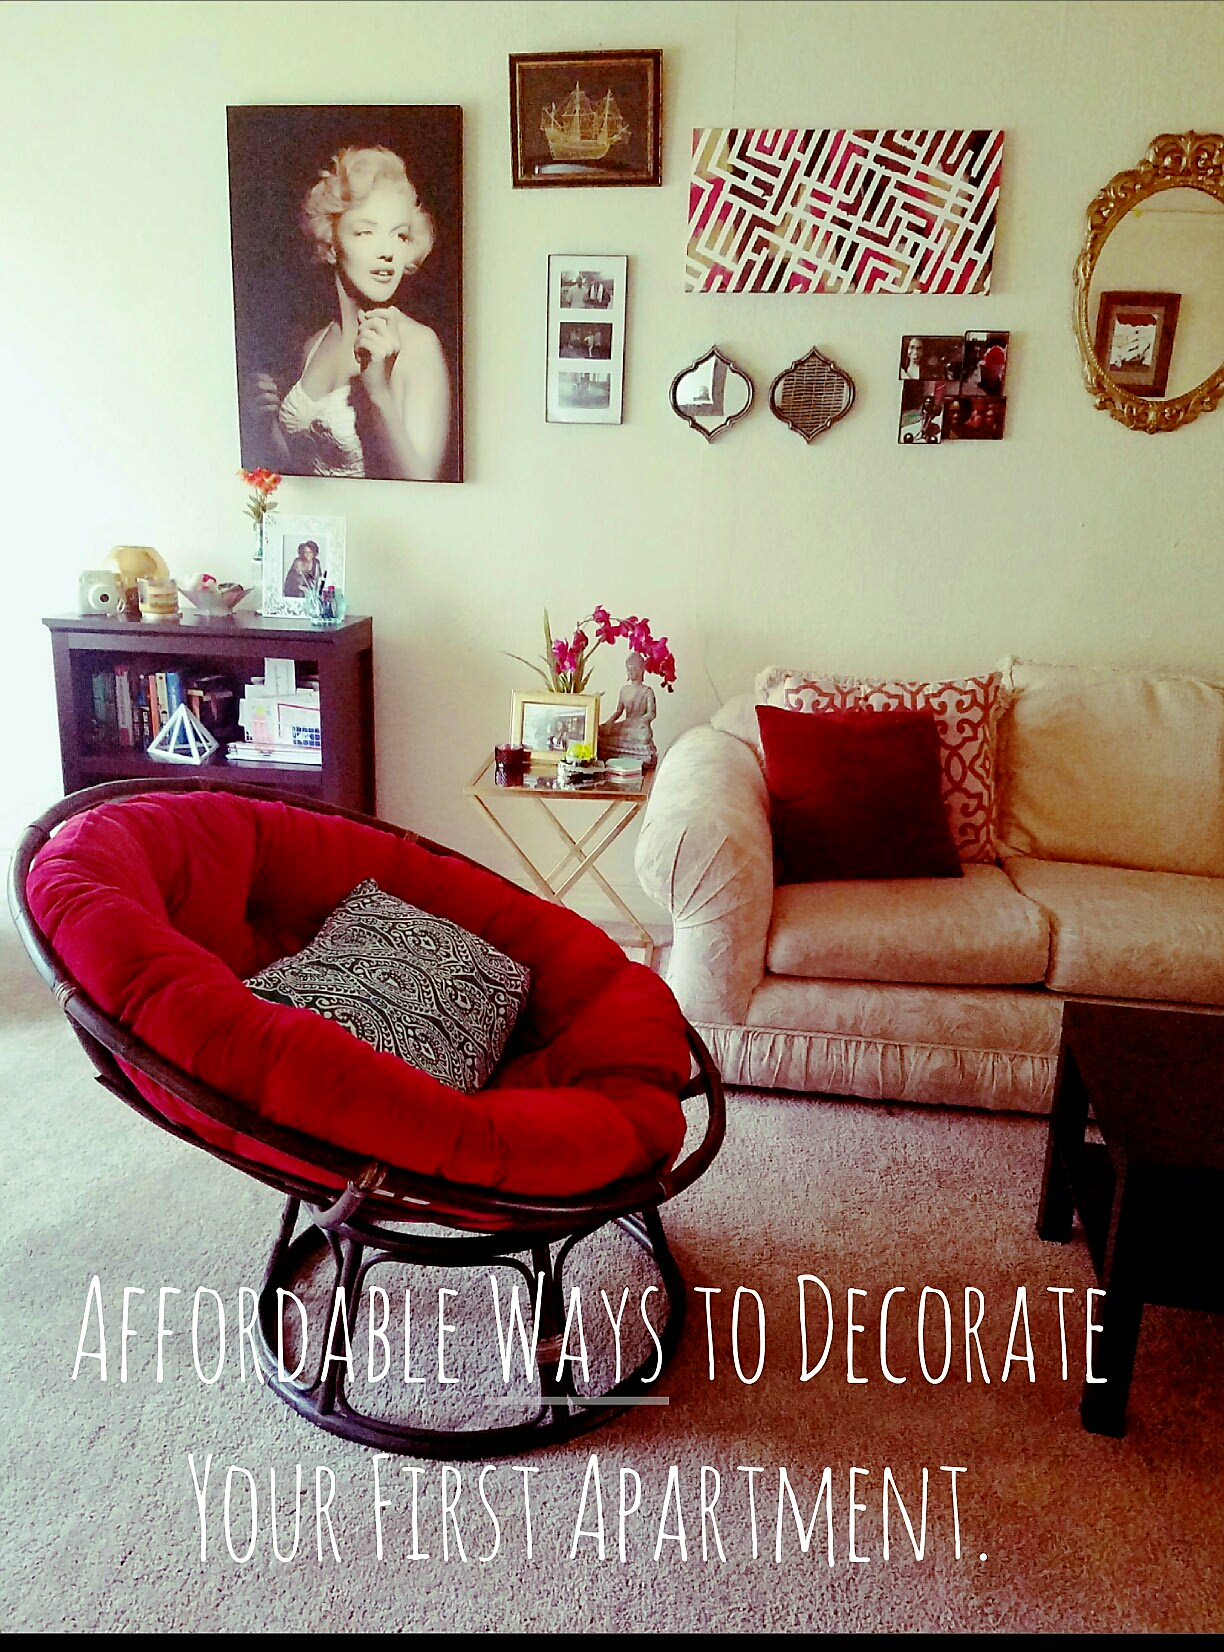 Affordable Ways to Decorate Your First Apartment – LaDoraBrowning.com